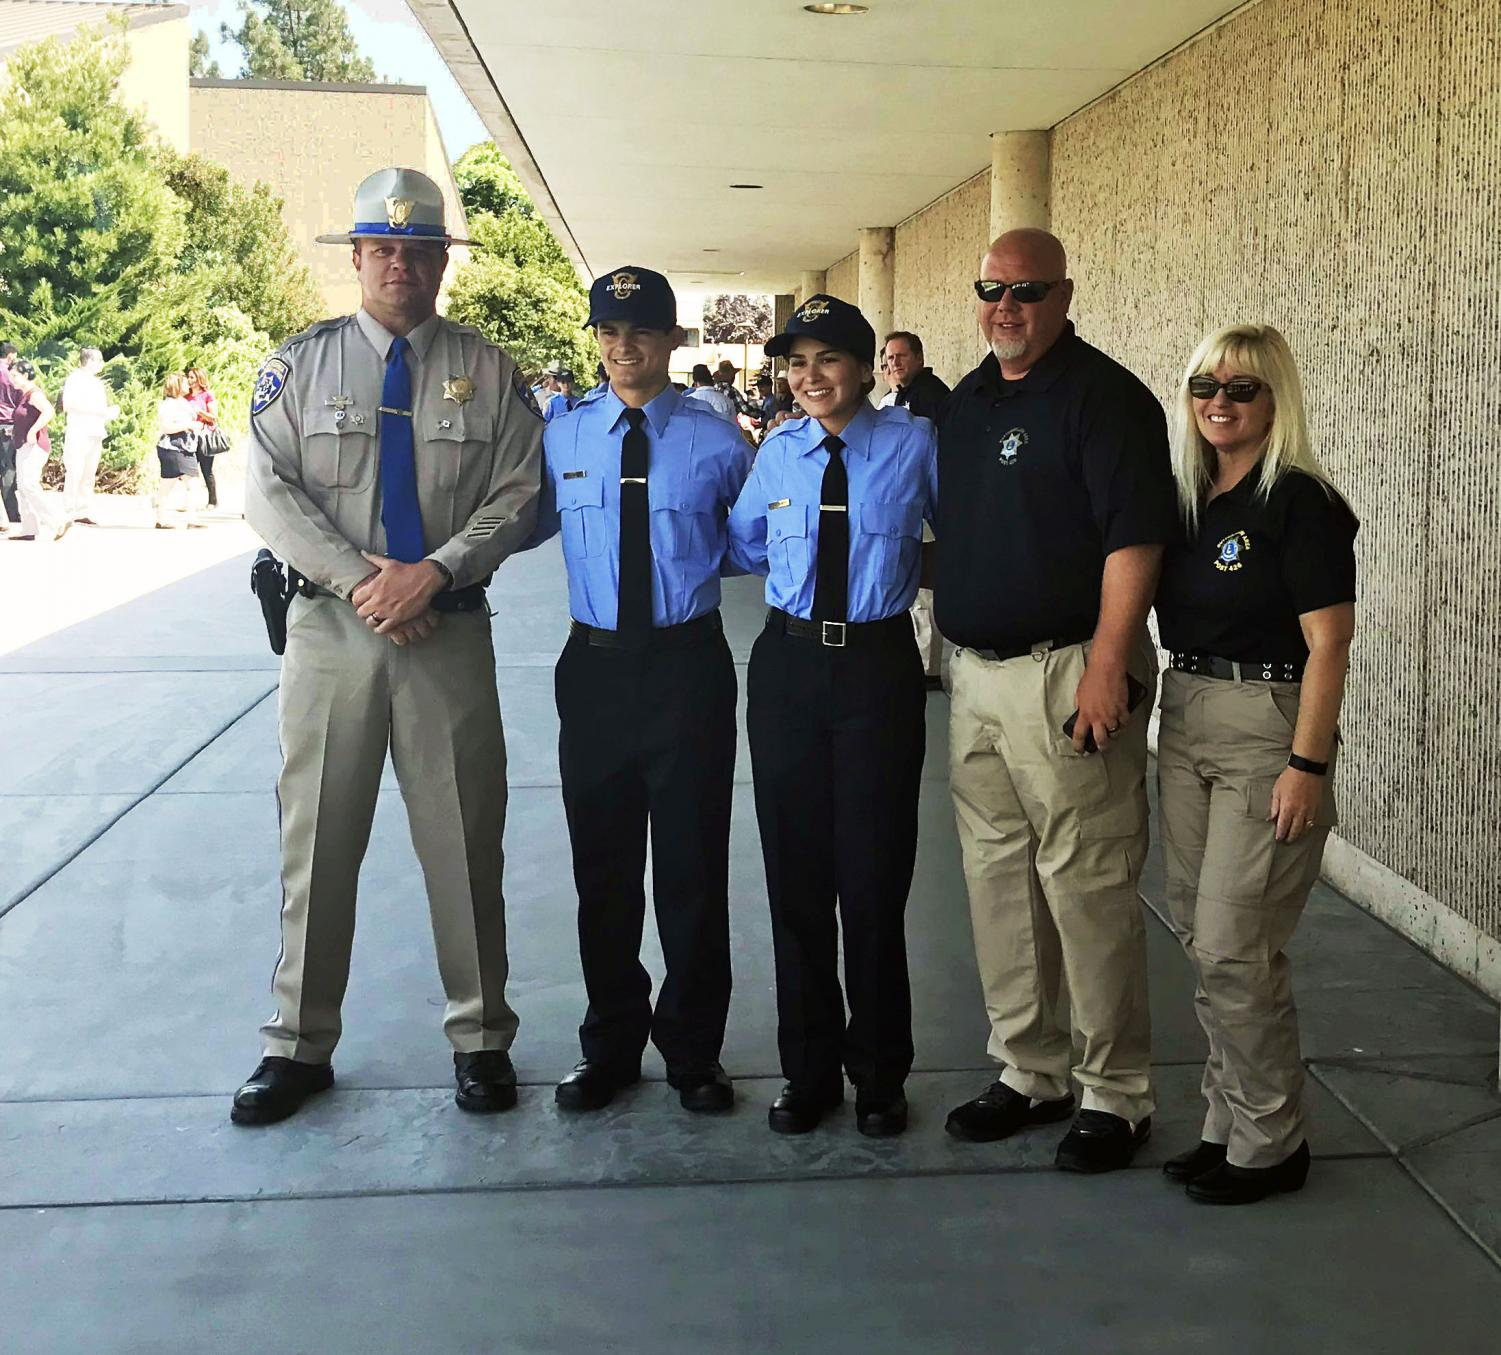 Accomplishing their goals. Lieutenant Michael White and sergeant Reagan Montgomery smiling proudly after the week long academy. Those standing alongside them are Officer Adam Taylor, Tommy White, and Korina Rawls. Tommy White proudly says,